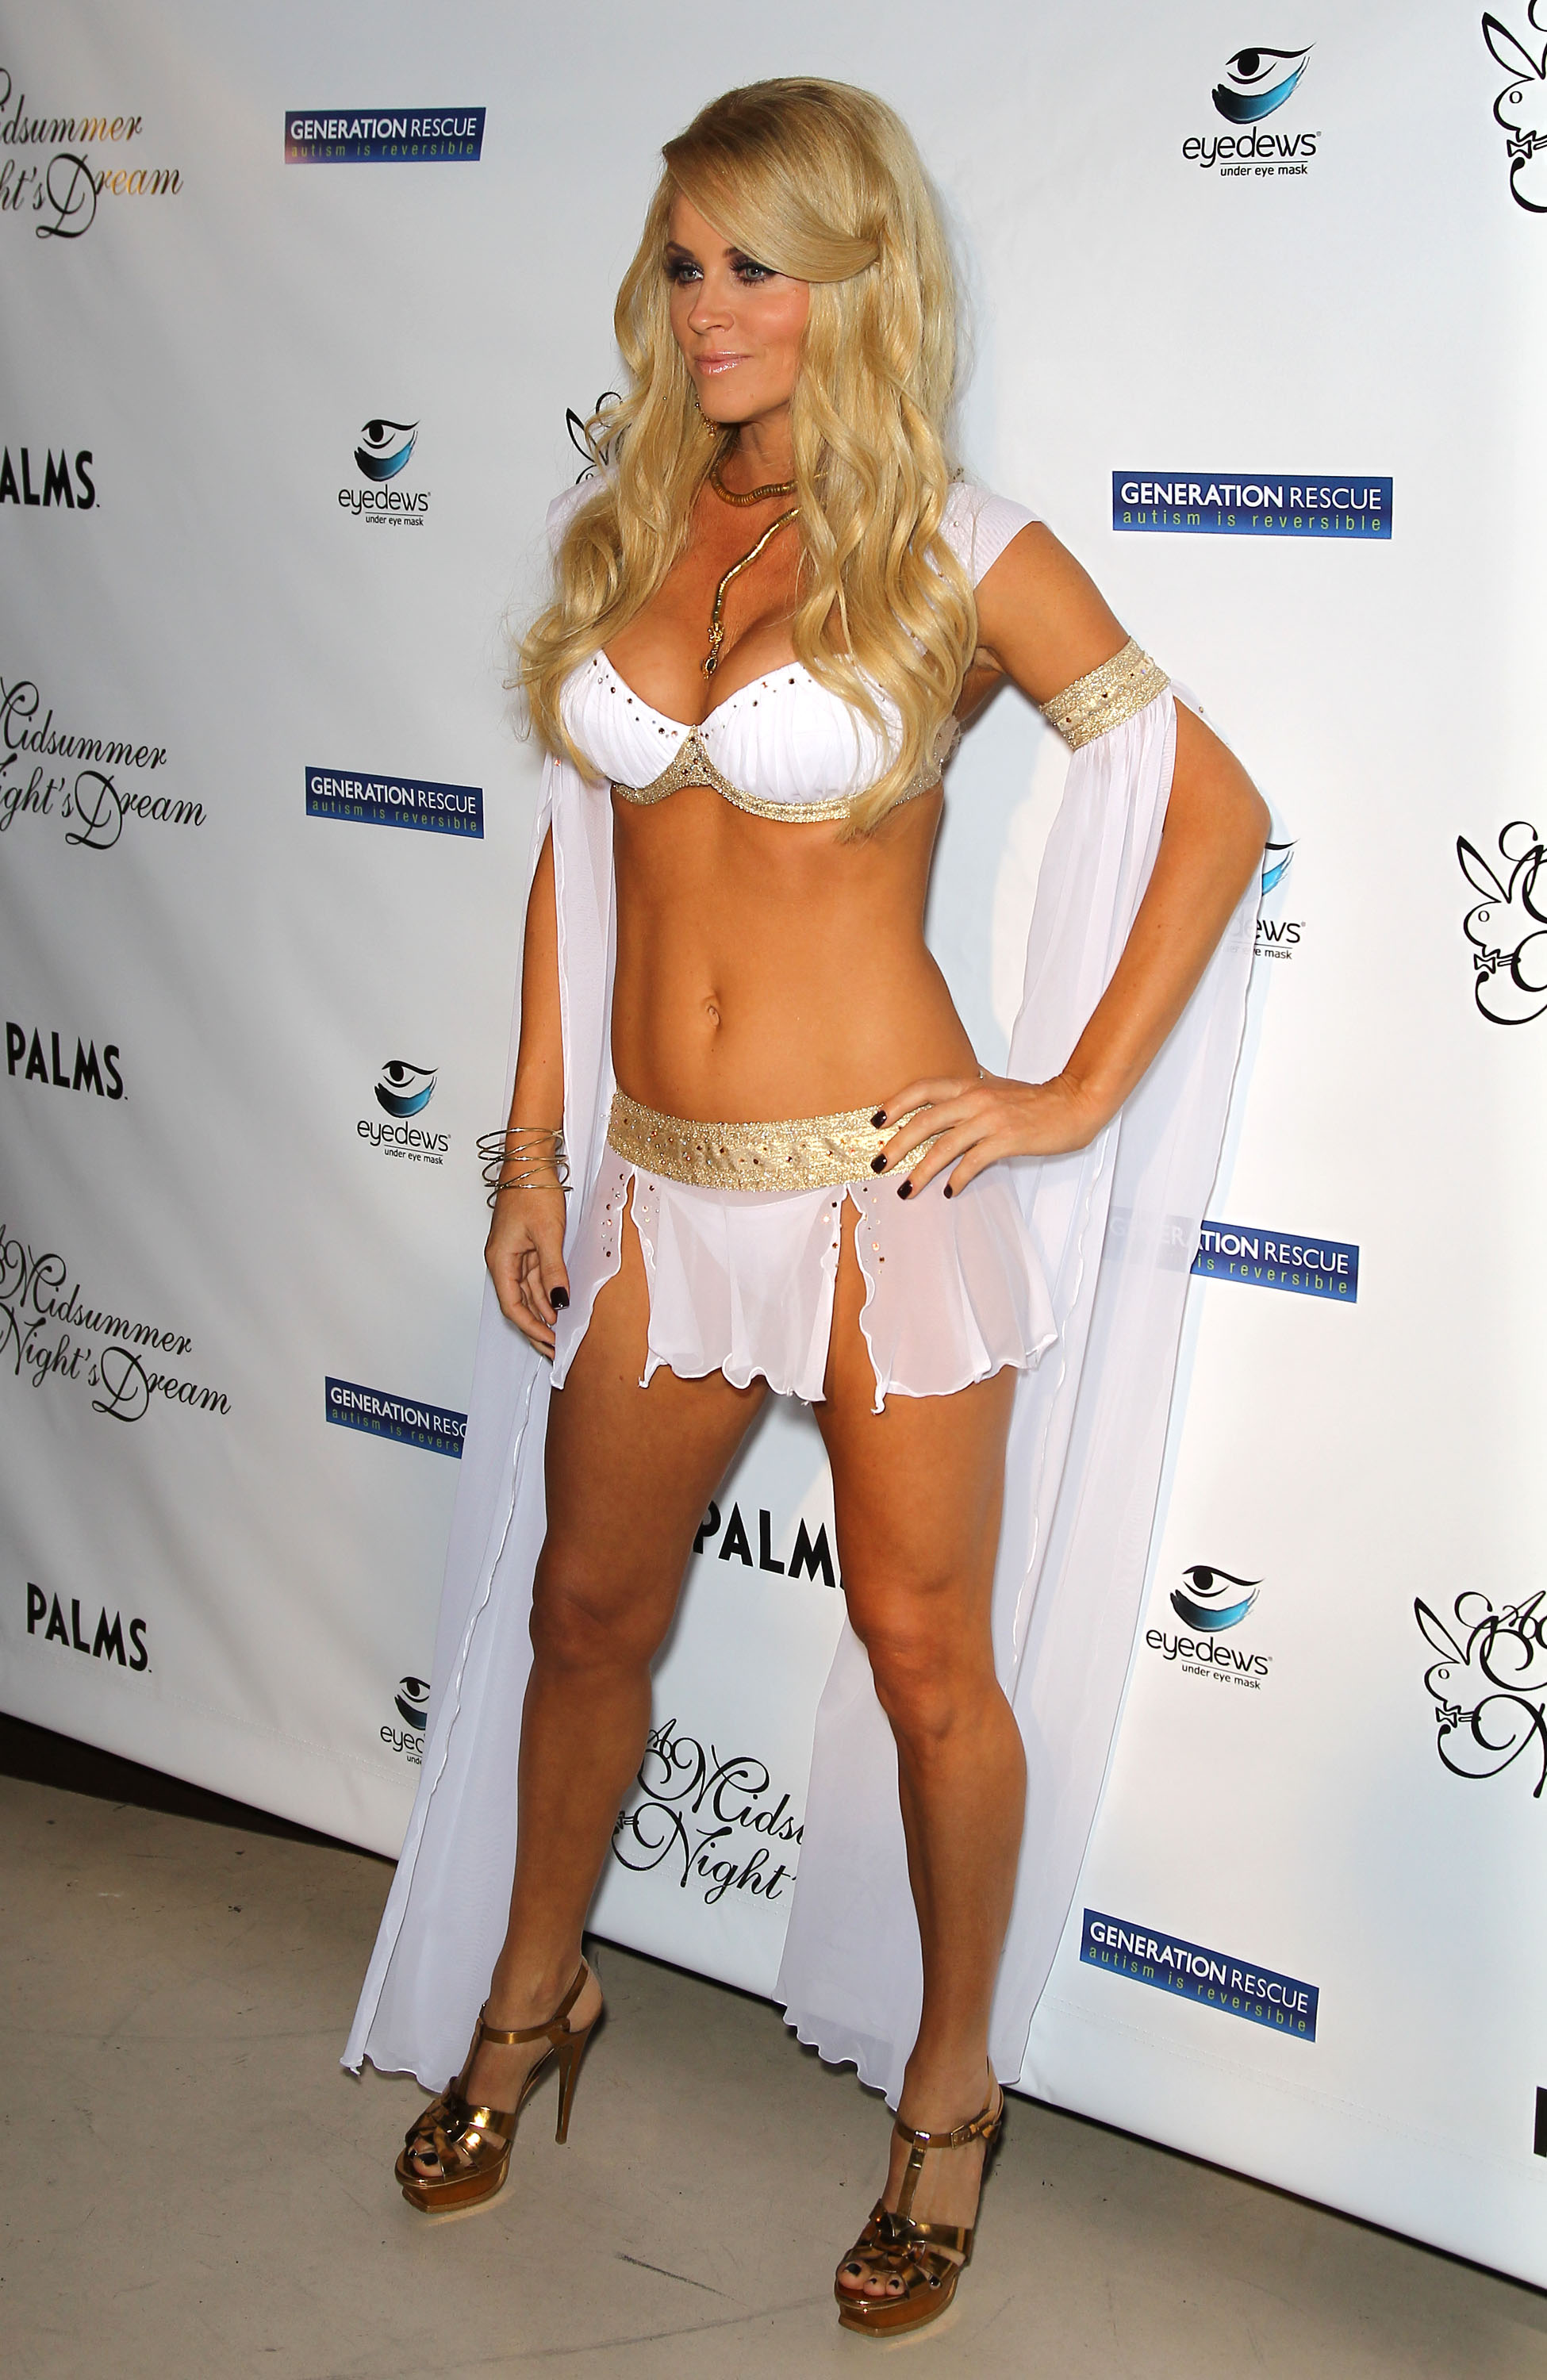 Only high quality pics and photos of Jenny McCarthy